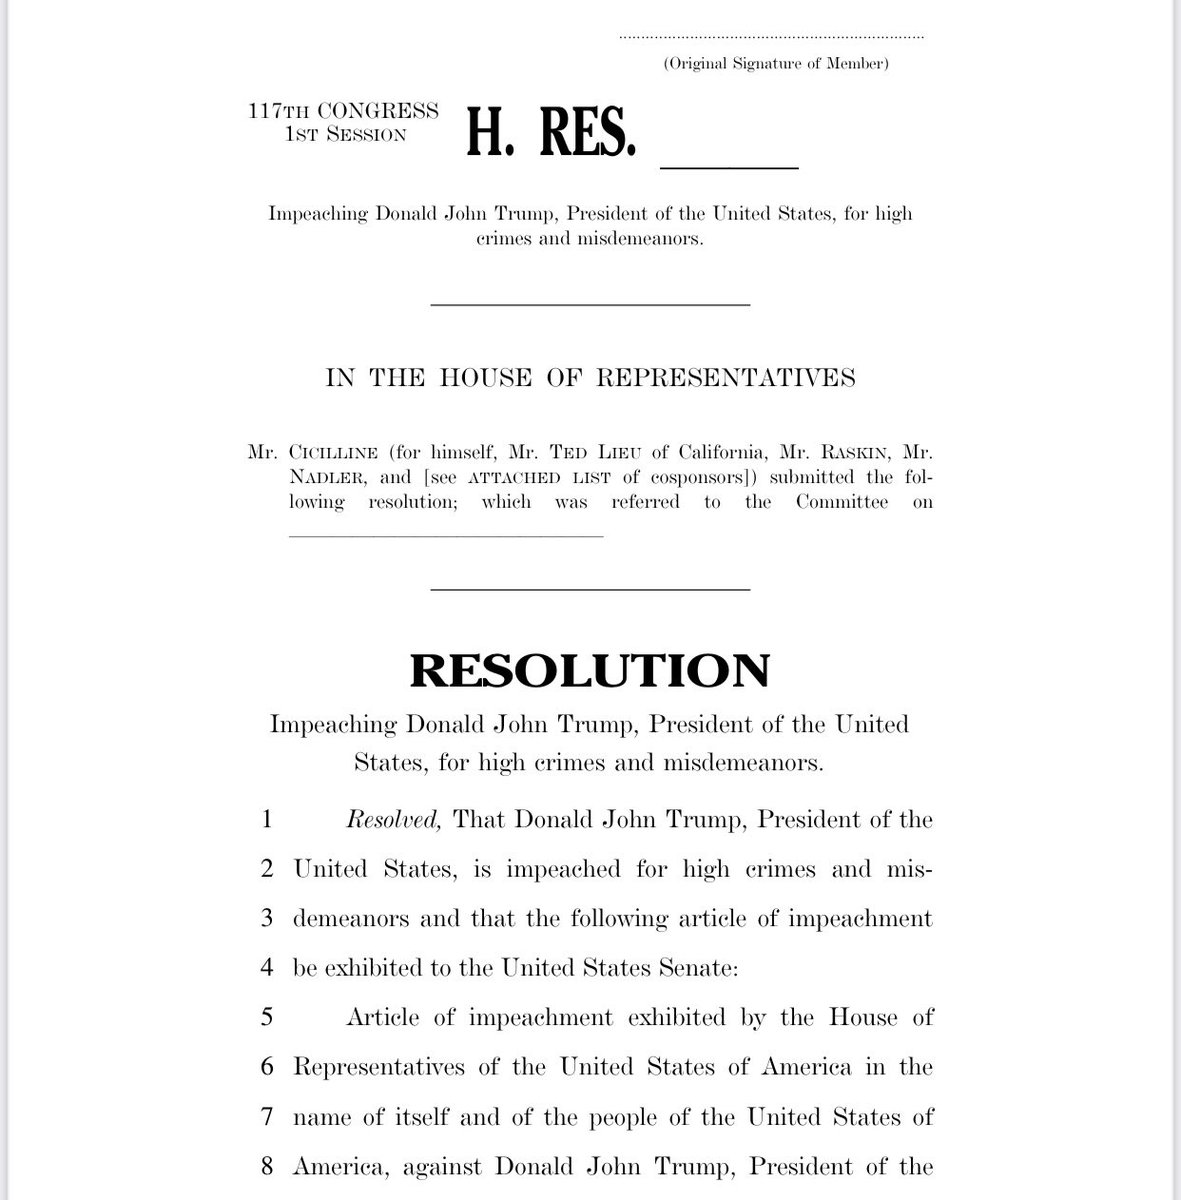 House Democrats introduce an article of impeachment charging Trump with incitement of insurrection